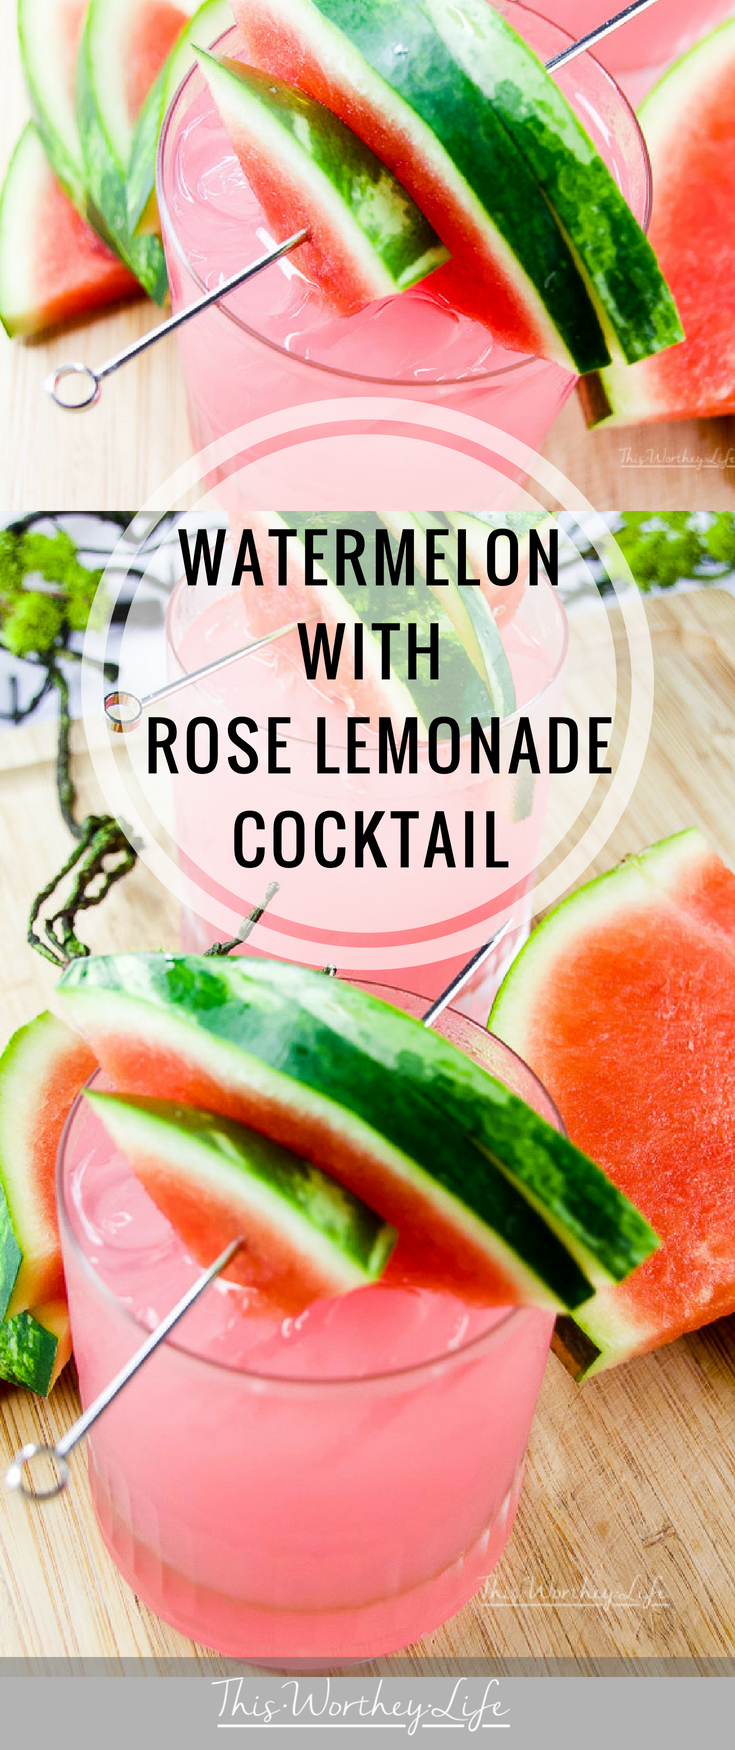 If you are looking for your go-to cocktail this summer you can't go wrong with our totally super yummy Watermelon + Rose Lemonade Cocktail. Using Smirnoff Watermelon Vodka, fresh watermelon, rose lemonade, and pink lemonade, this mix is one summer drink you will not forget!